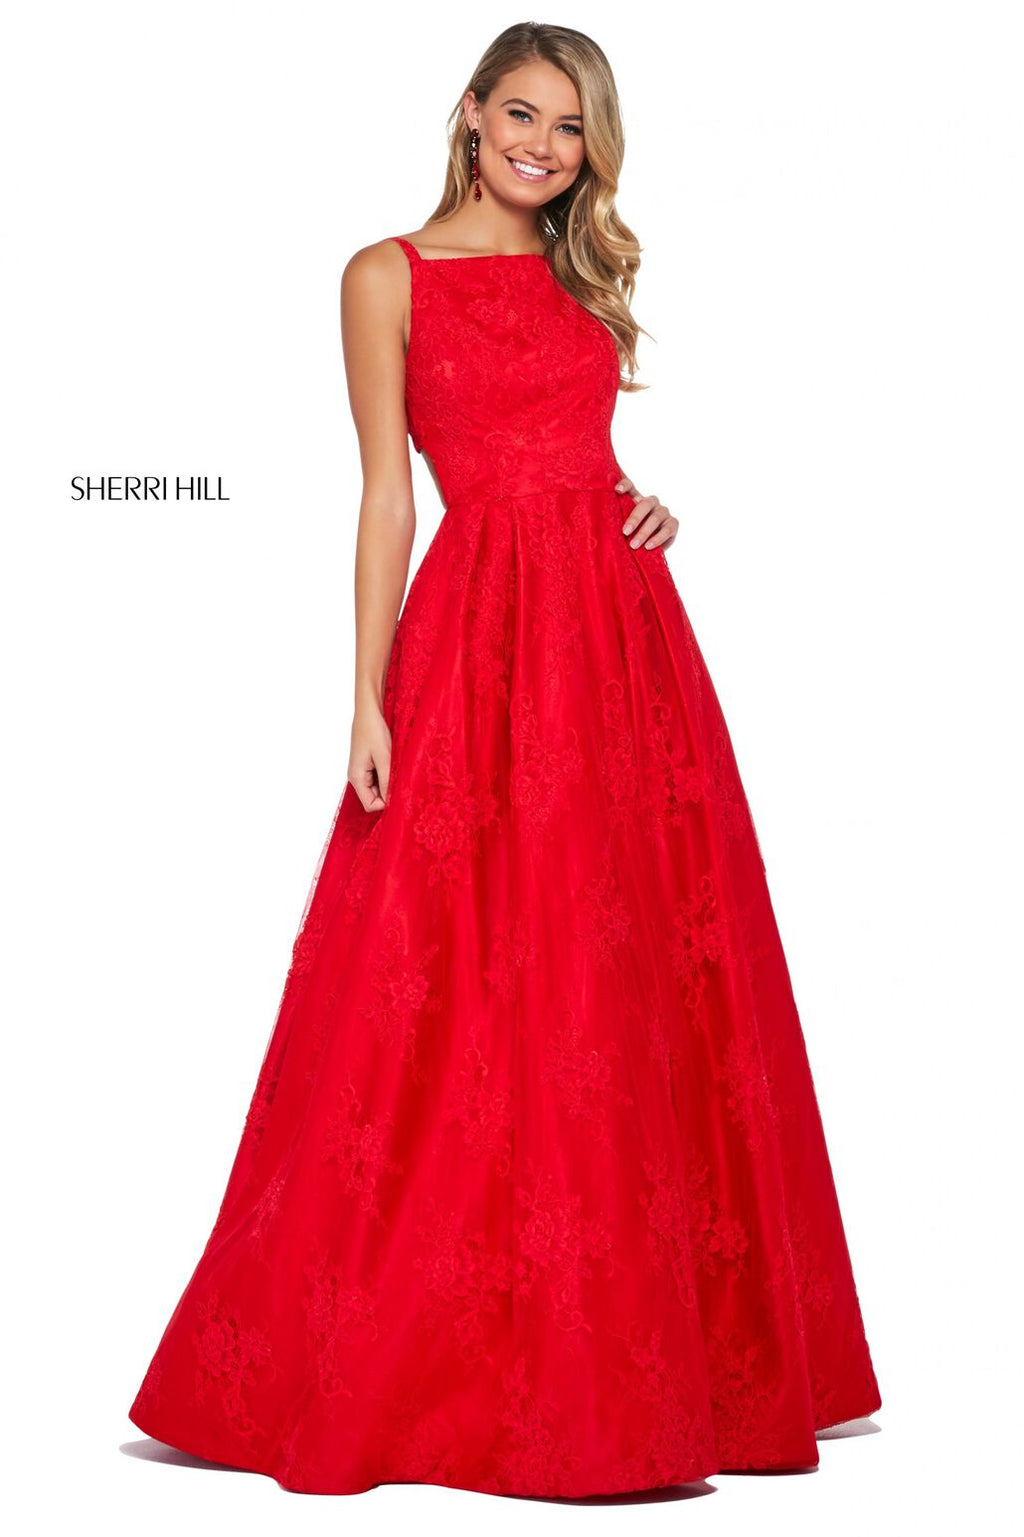 This Sherri Hill 53462 lace A-line dress in red features a bateau neckline and a cut out back with button details.